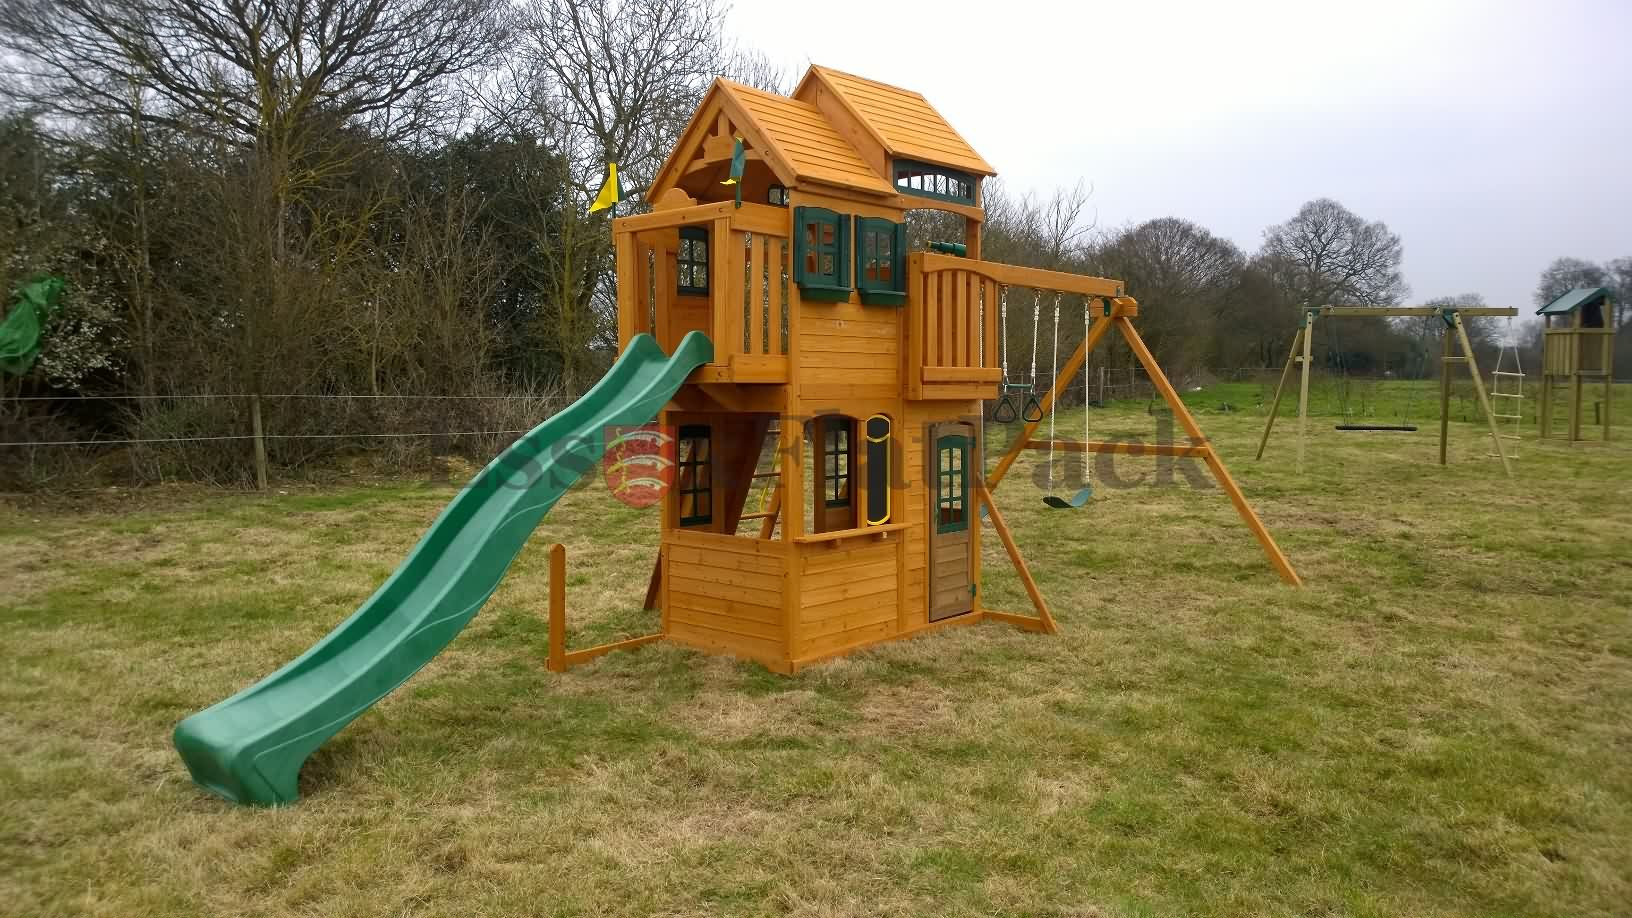 essexflatpack-playhouse-20160323144320.jpg